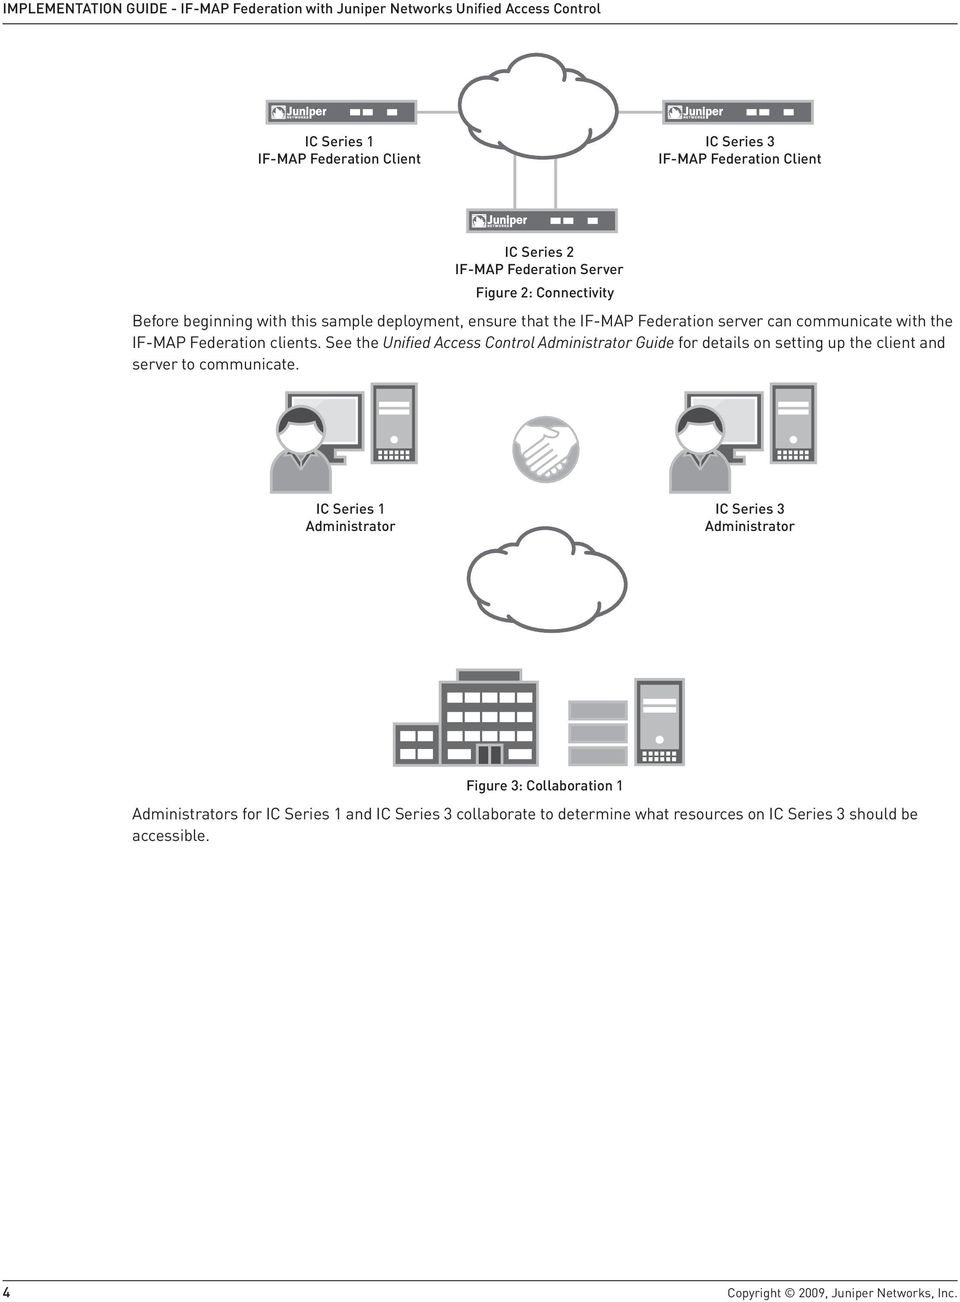 See the Unified Access Control Administrator Guide for details on setting up the client and server to communicate.